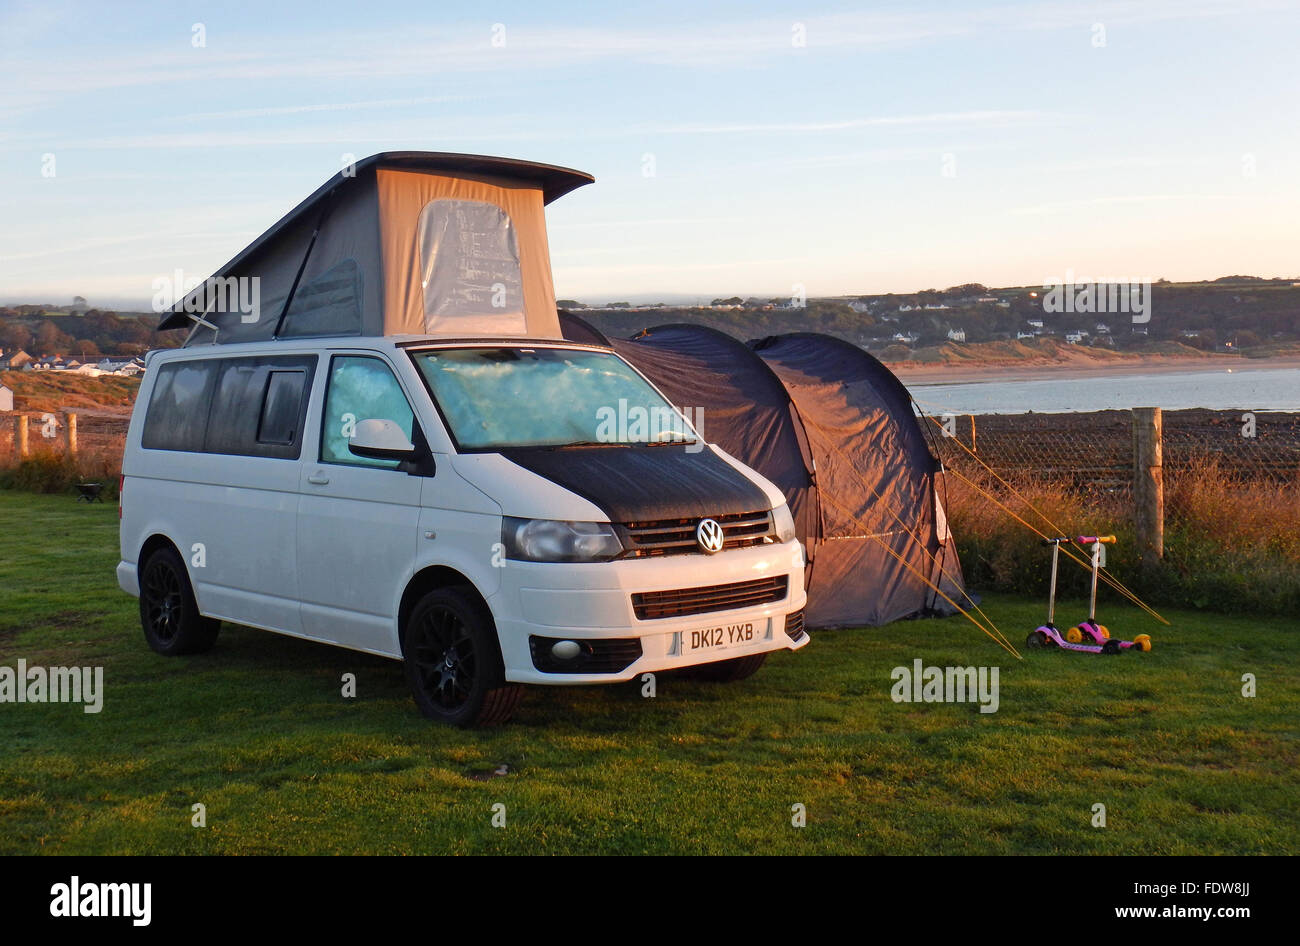 volkswagen transporter t5 camper van stock photo royalty free image 94597962 alamy. Black Bedroom Furniture Sets. Home Design Ideas